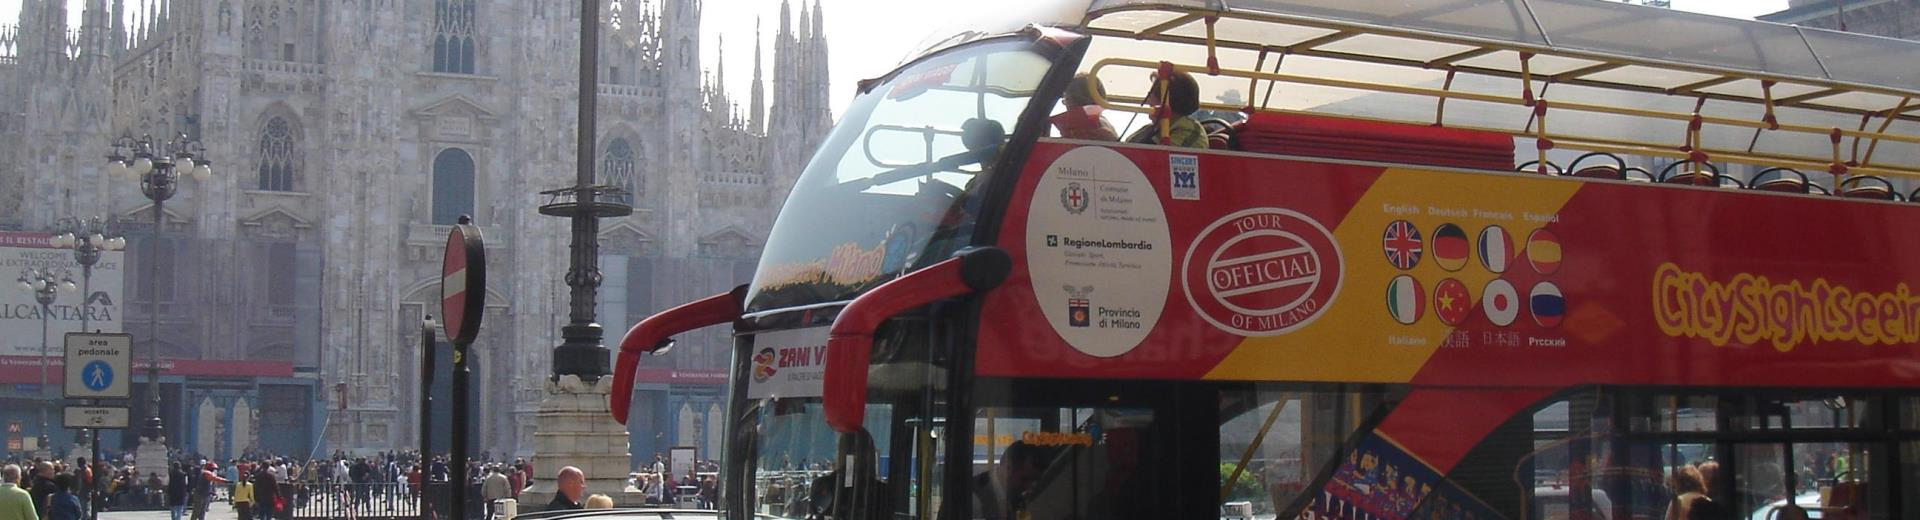 Panoramic bus in Piazza Duomo